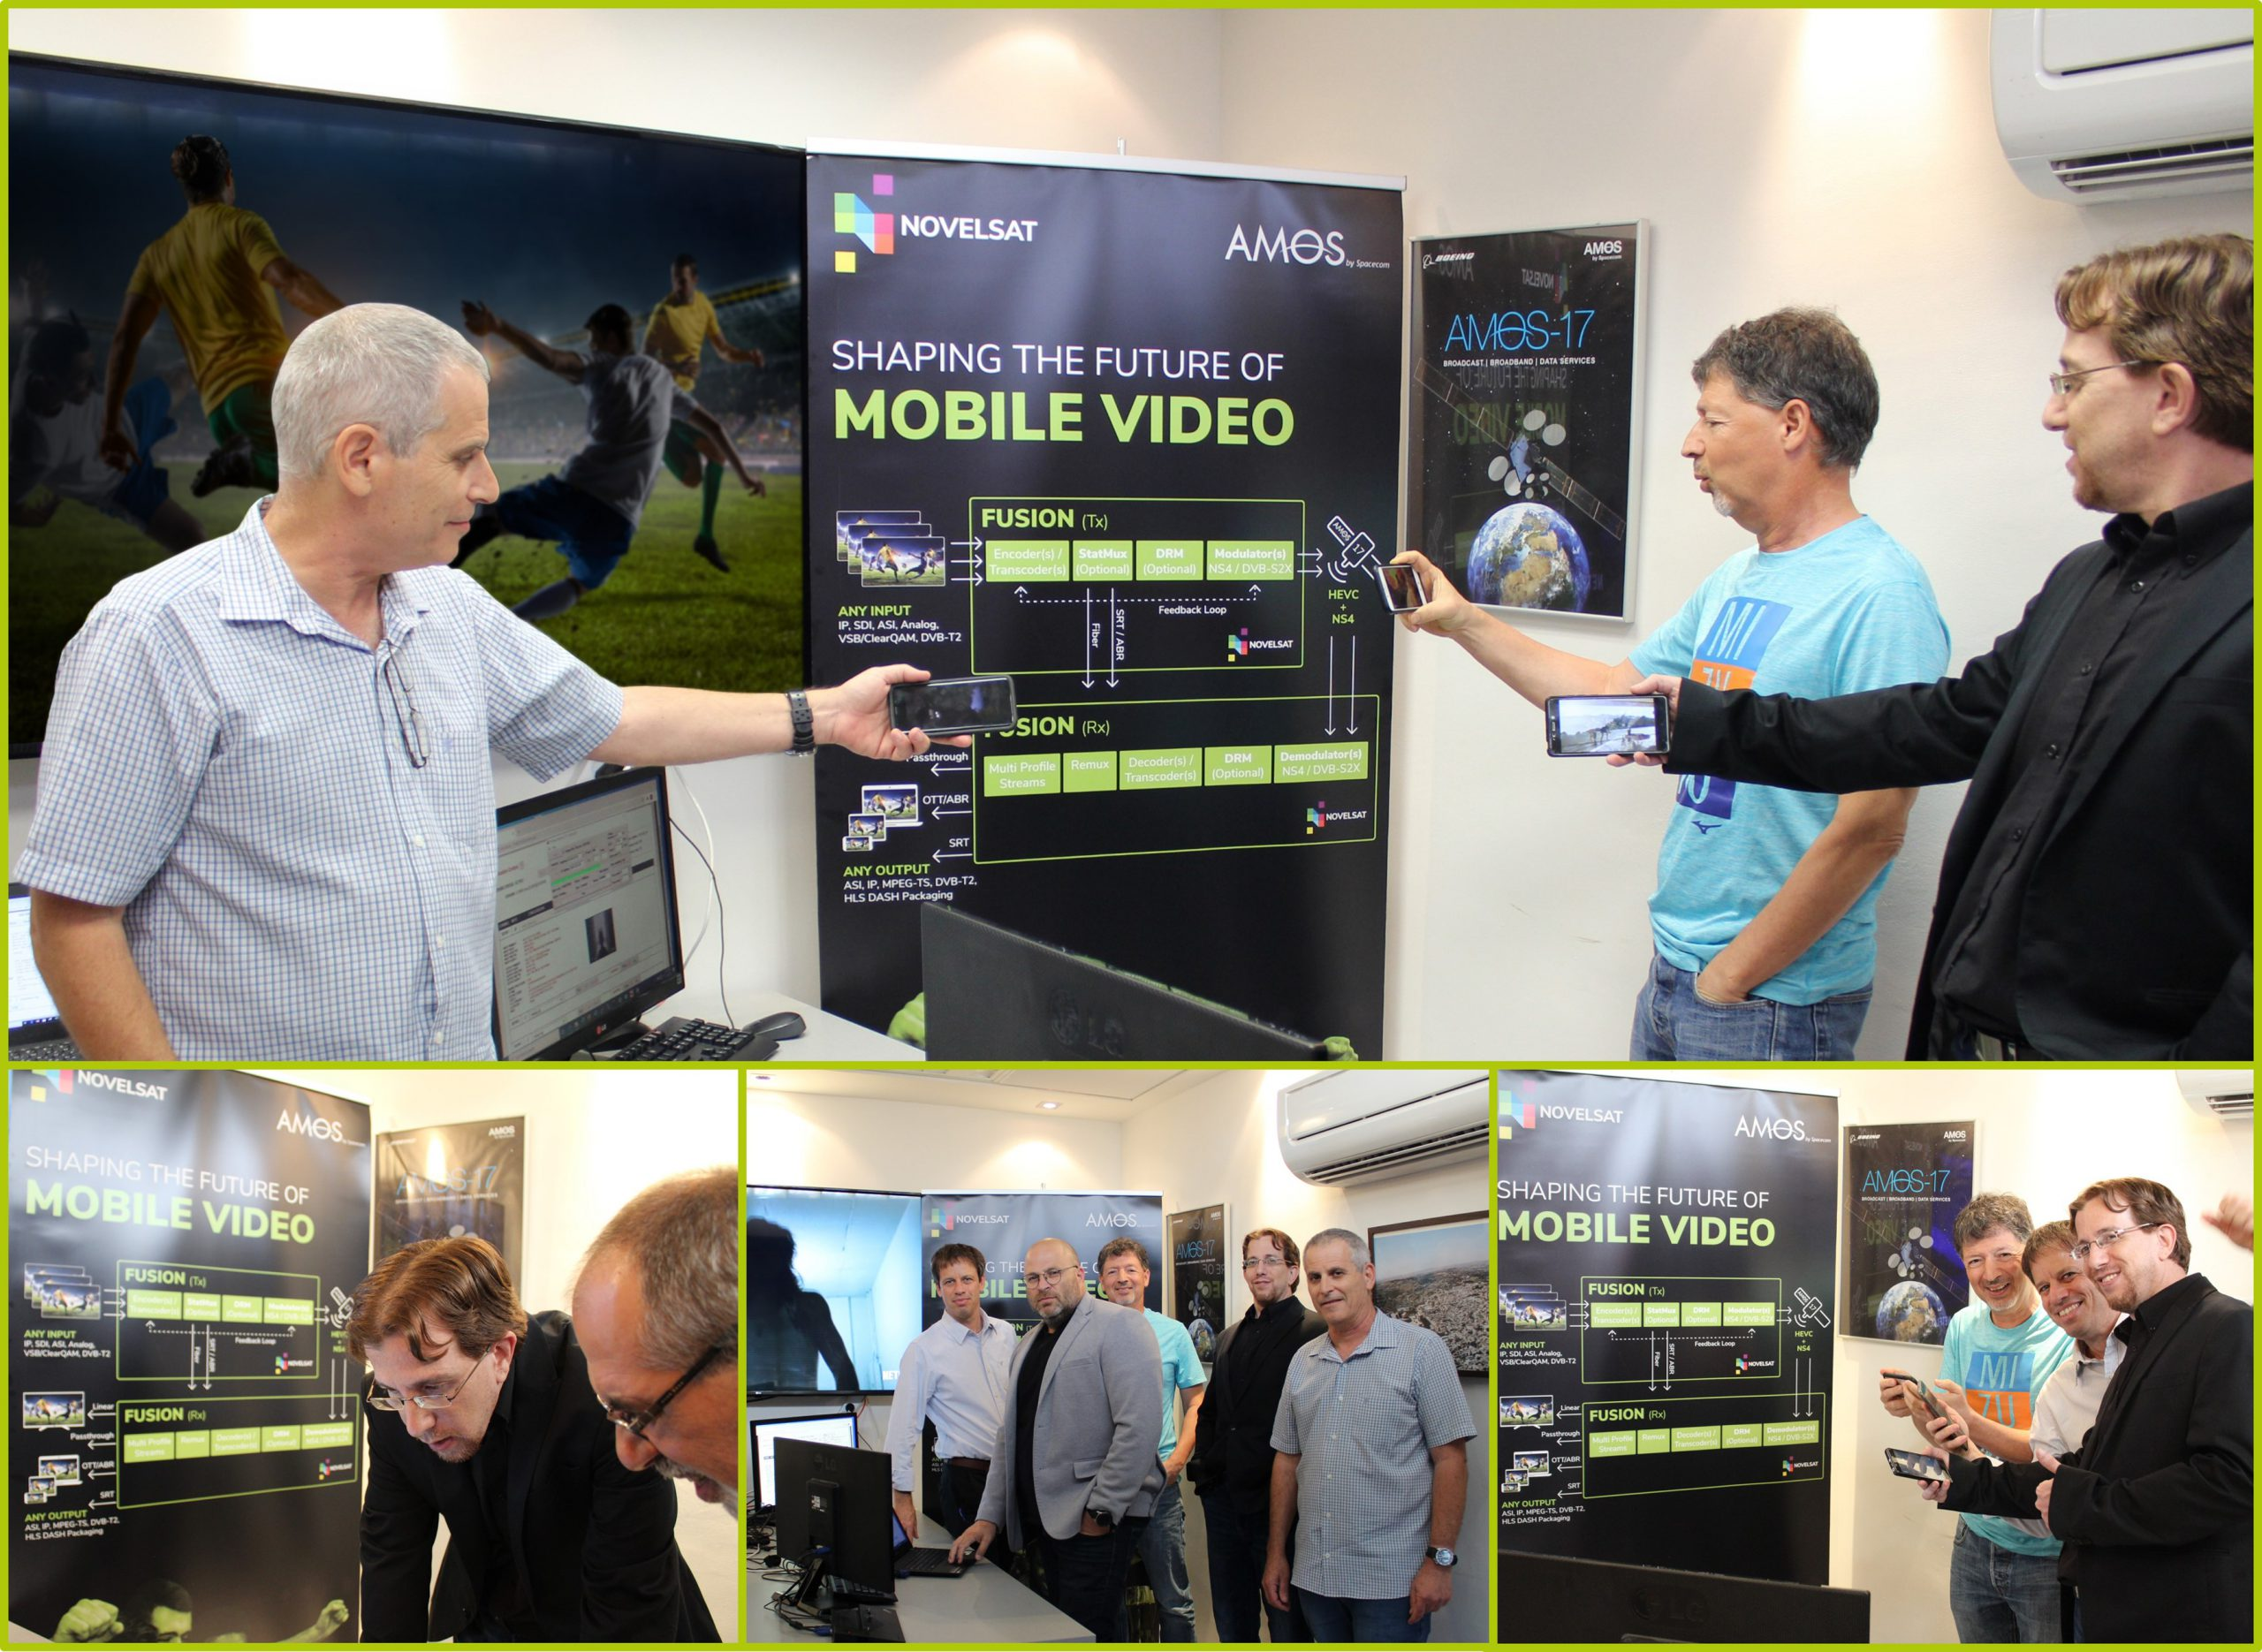 Spacecom and NOVELSAT Demonstrate High-Volume Video Delivery over AMOS-17 Satellite for 5G Networks and Wi-Fi Hotspots